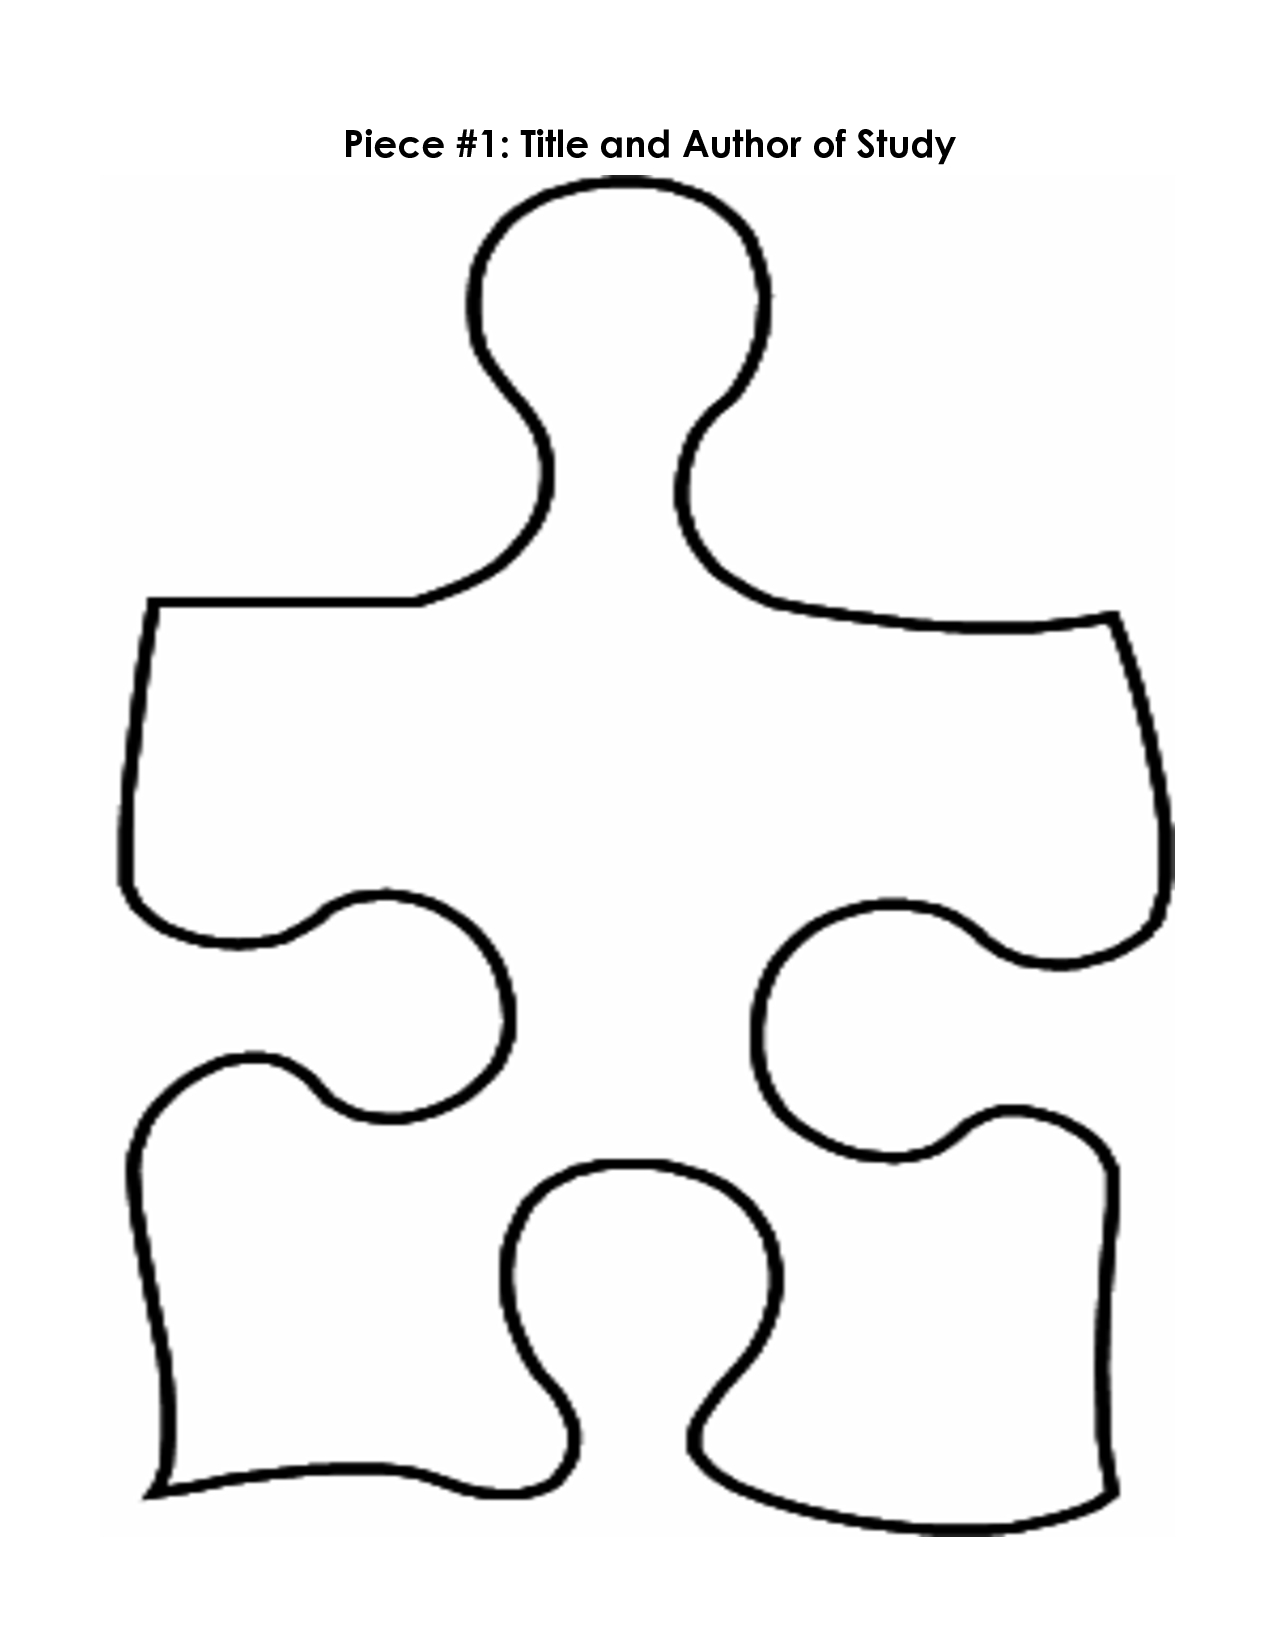 Puzzle Piece Mystery Book Template Pp | Printables | Pinterest - Free Printable Blank Puzzle Pieces